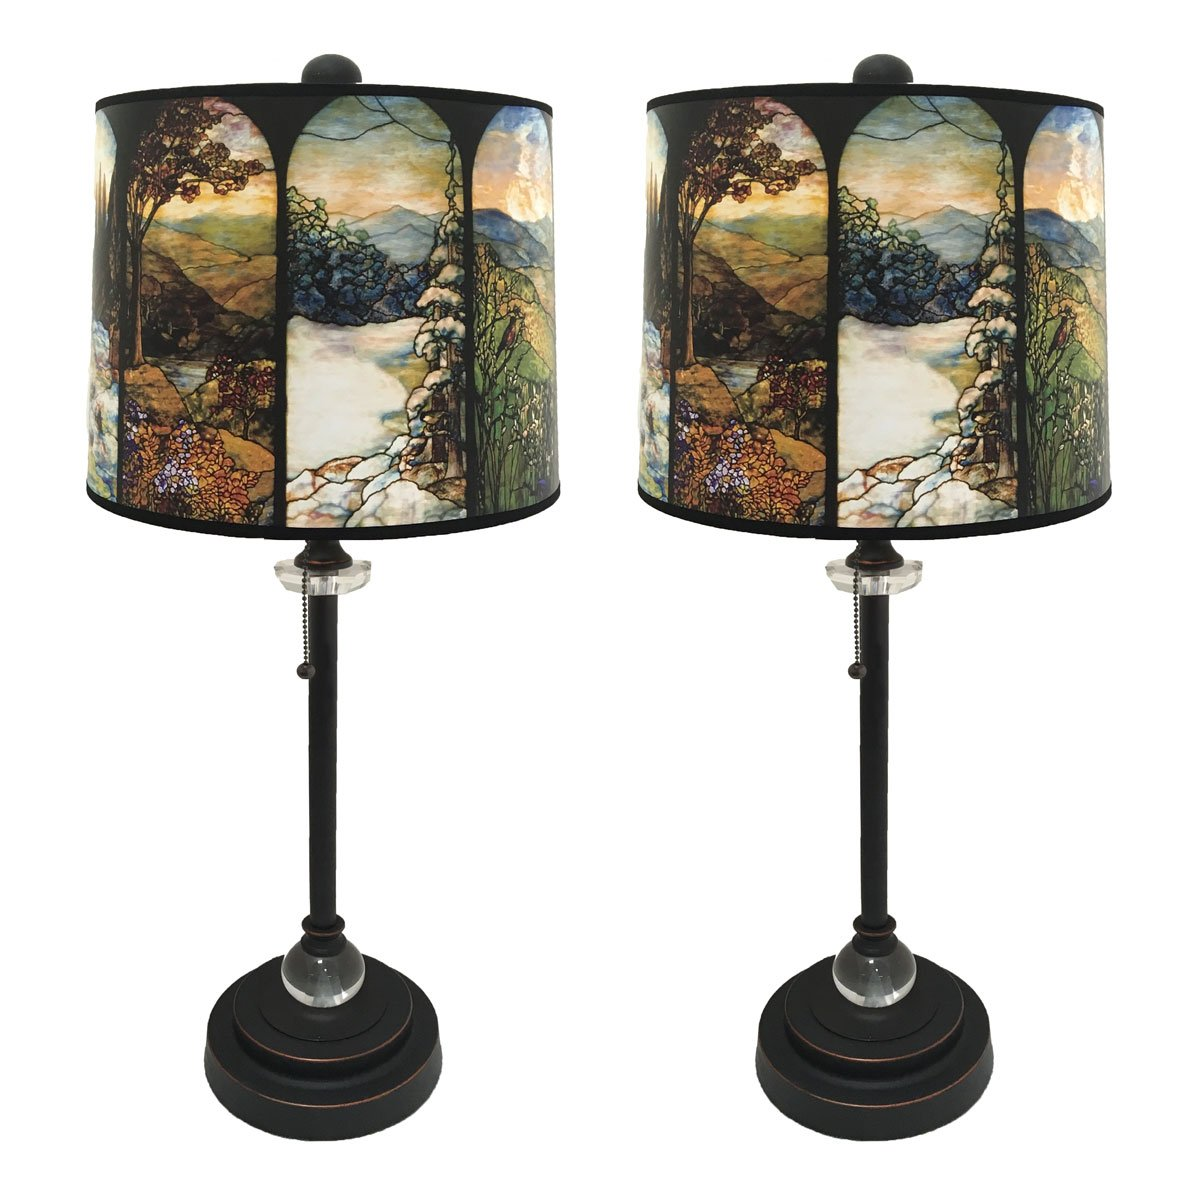 Royal Designs 28'' Crystal and Oil Rub Bronze Buffet Lamp with Four Seasons Stained Glass Design Hard Back Lamp Shade, Set of 2